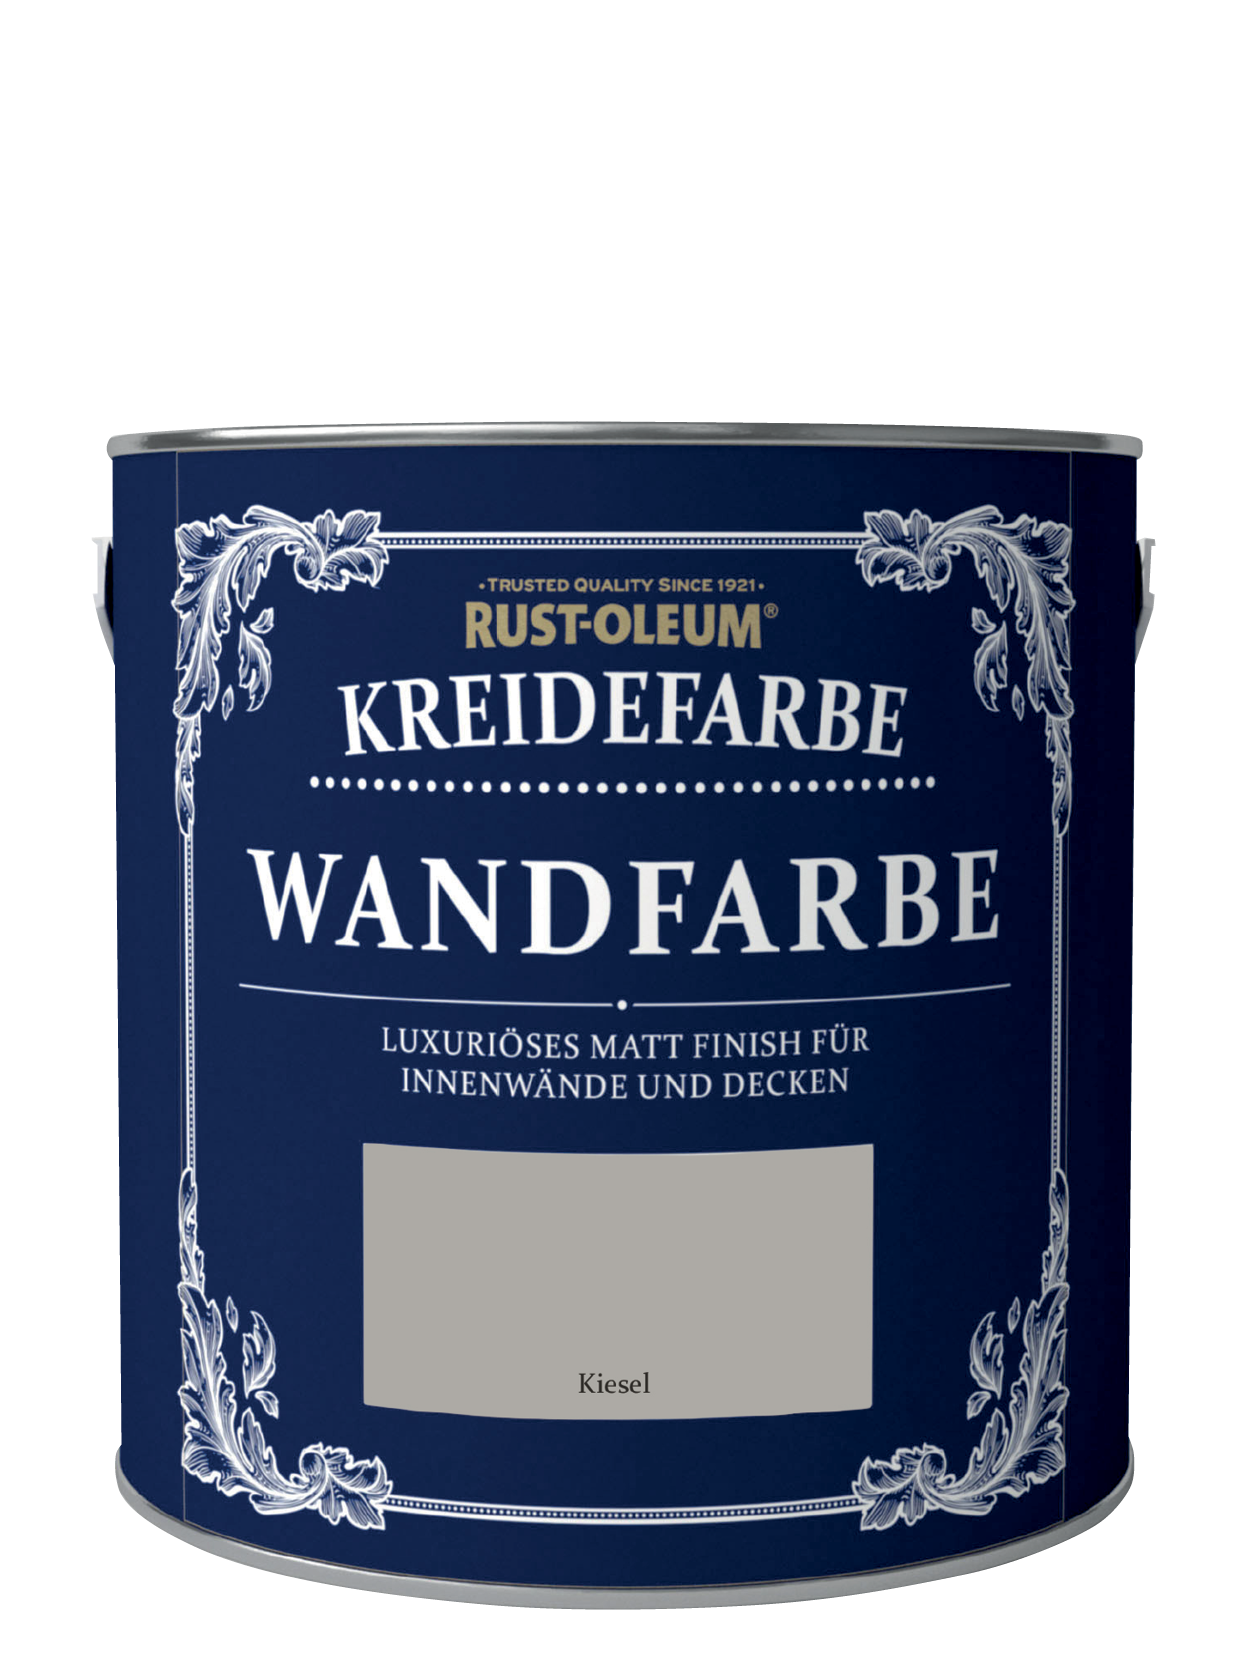 kreidefarbe wandfarbe rustoleum spray paint www. Black Bedroom Furniture Sets. Home Design Ideas